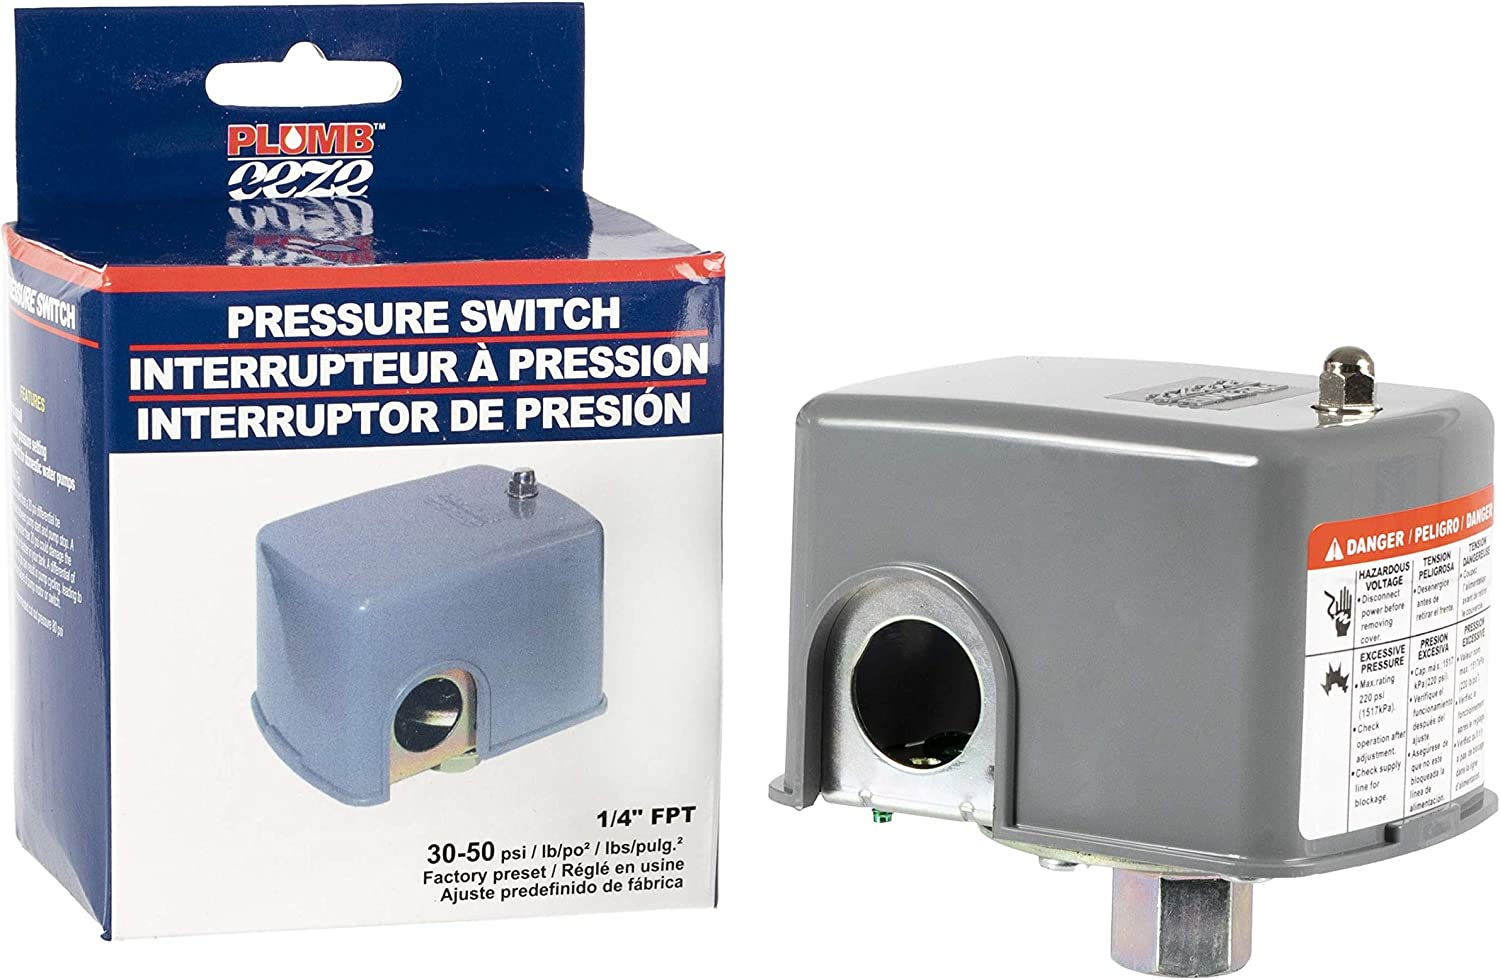 1//4 FPT Connection PLUMB-eeze by Boshart Pressure Switch set @ 30-50 PSI